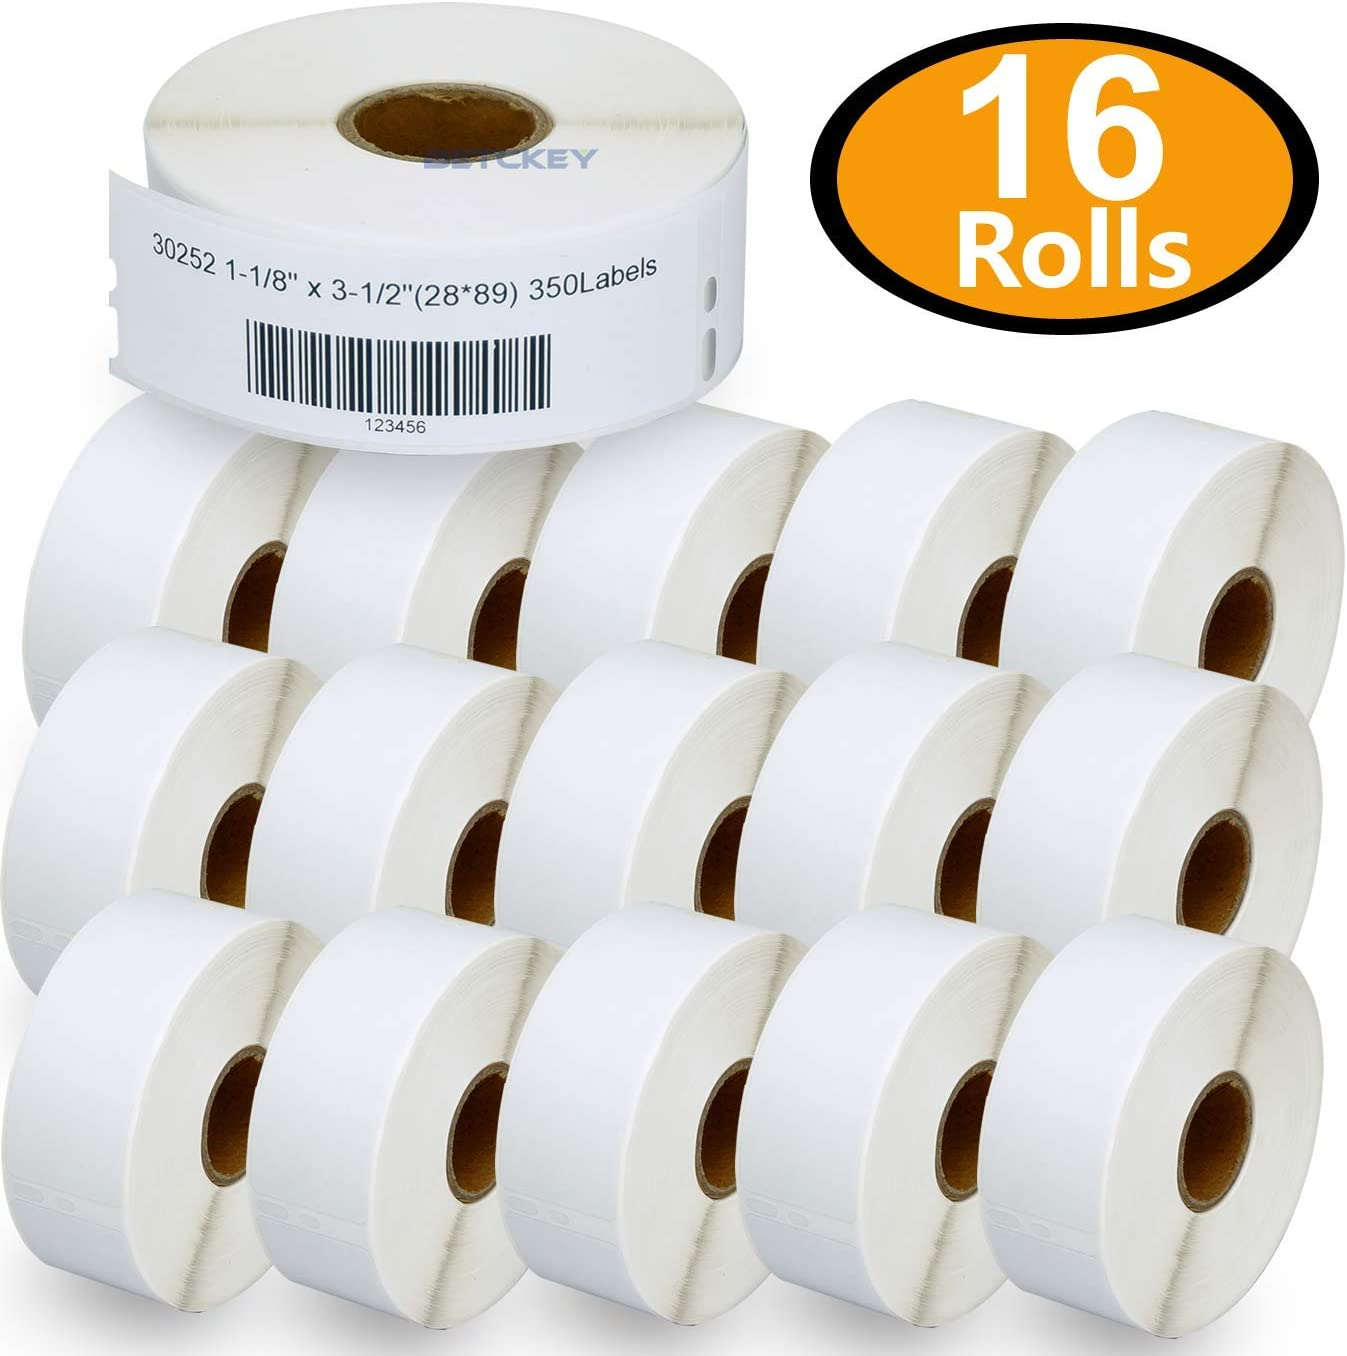 """Address Labels White 1-1//8/"""" x 3-1//2/"""" compatible for Dymo 30252 LabelWriter 320"""